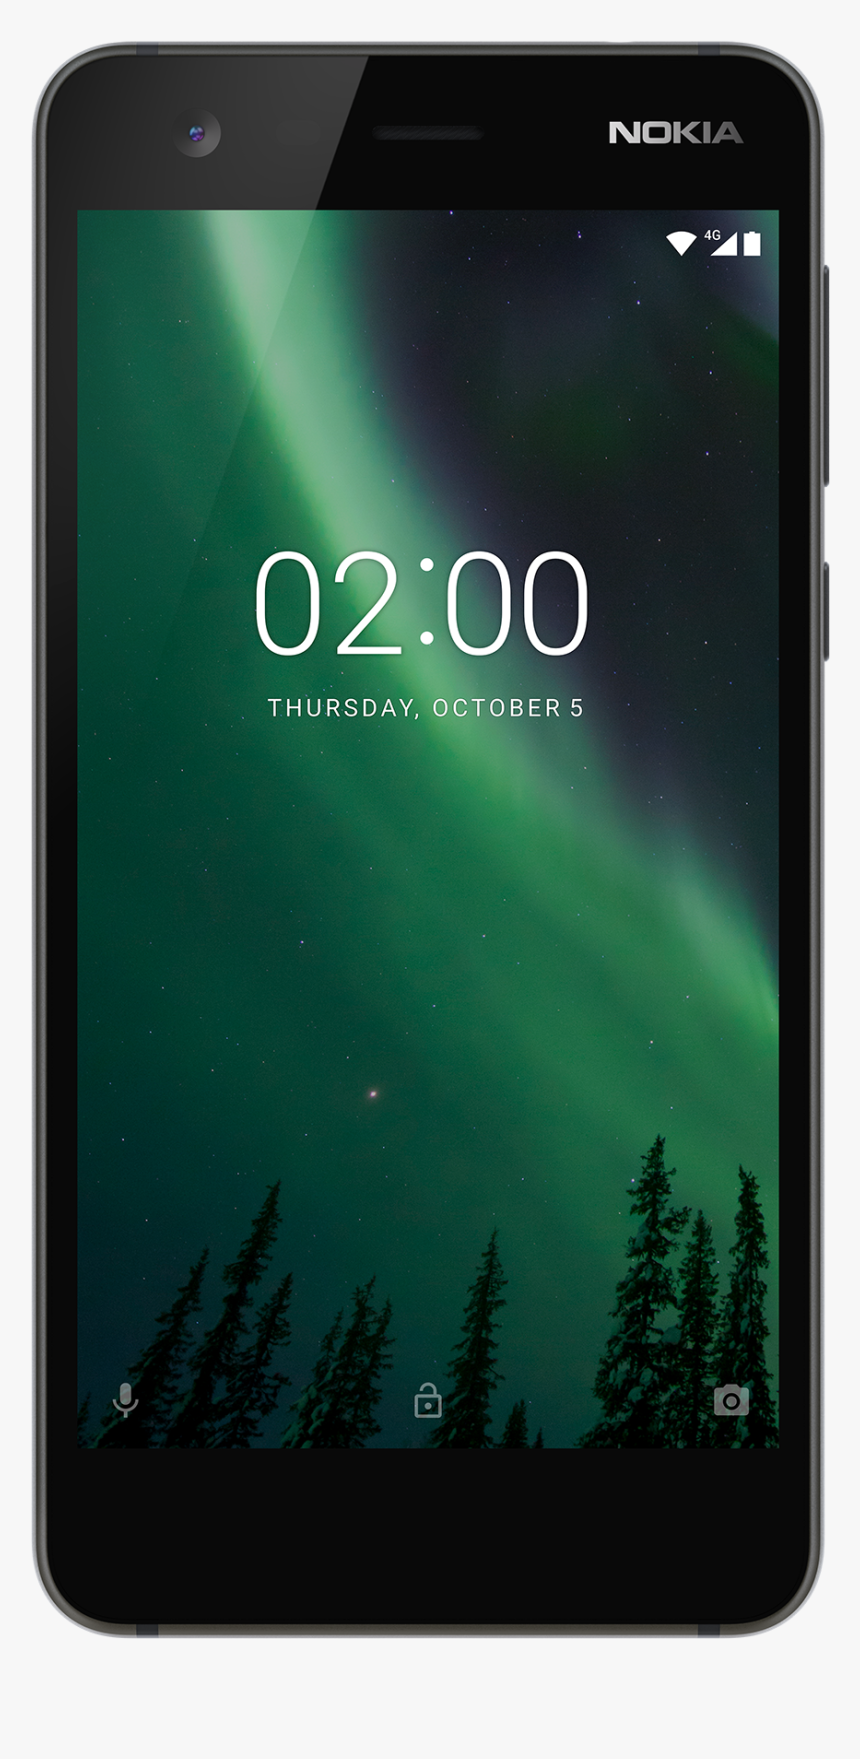 The Nokia 2 Also Sports A Hd 720p Display - Nokia 2 Ds 4g, HD Png Download, Free Download